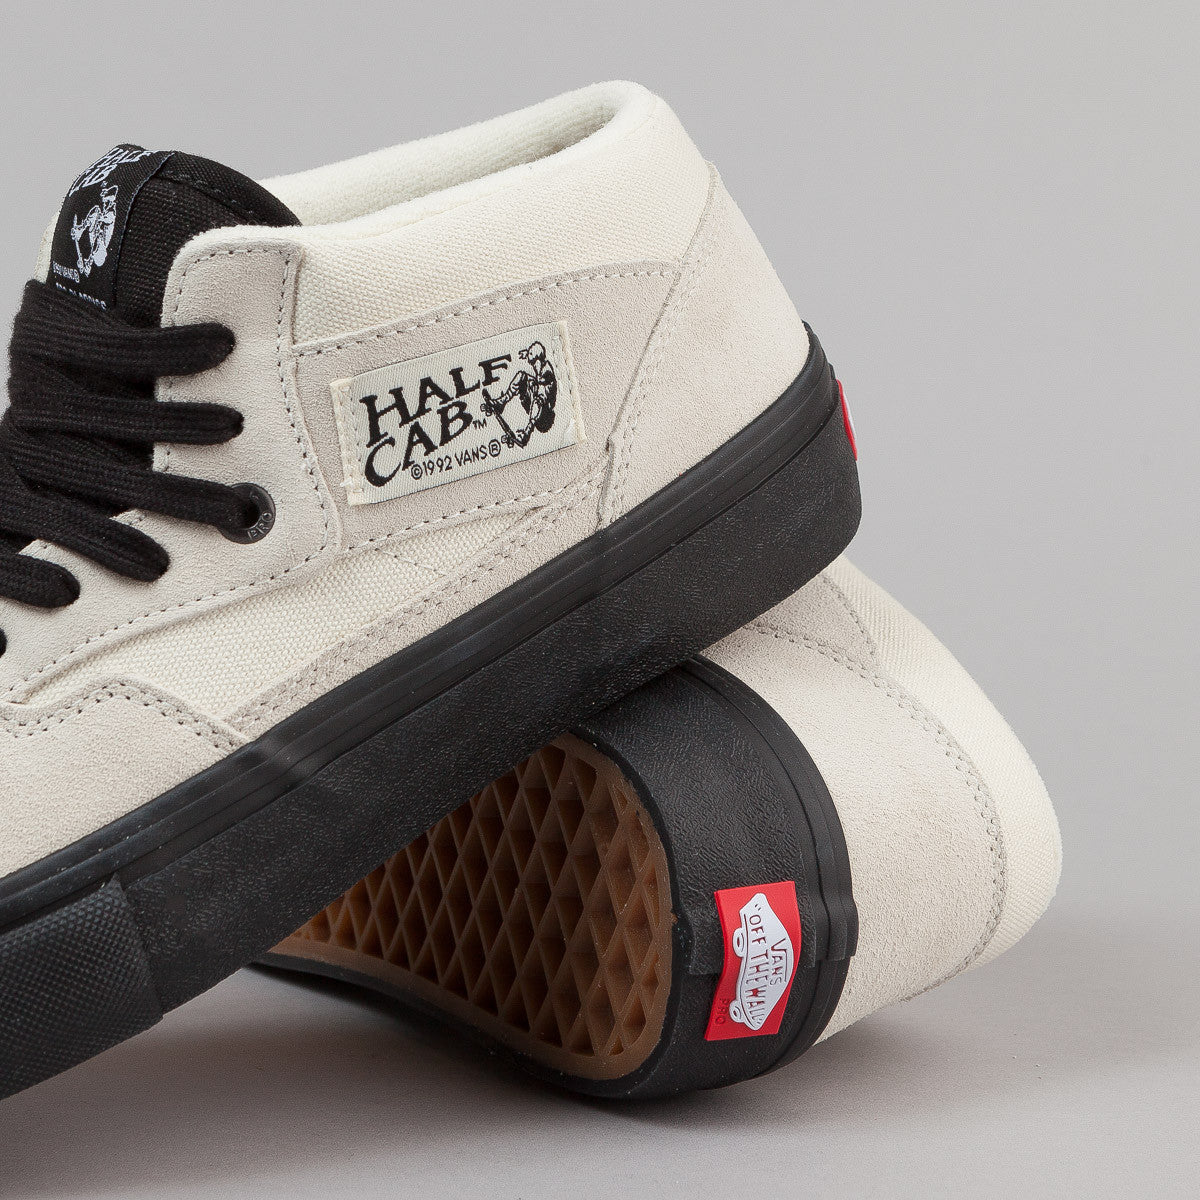 Vans Half Cab Pro Shoes - White / Black